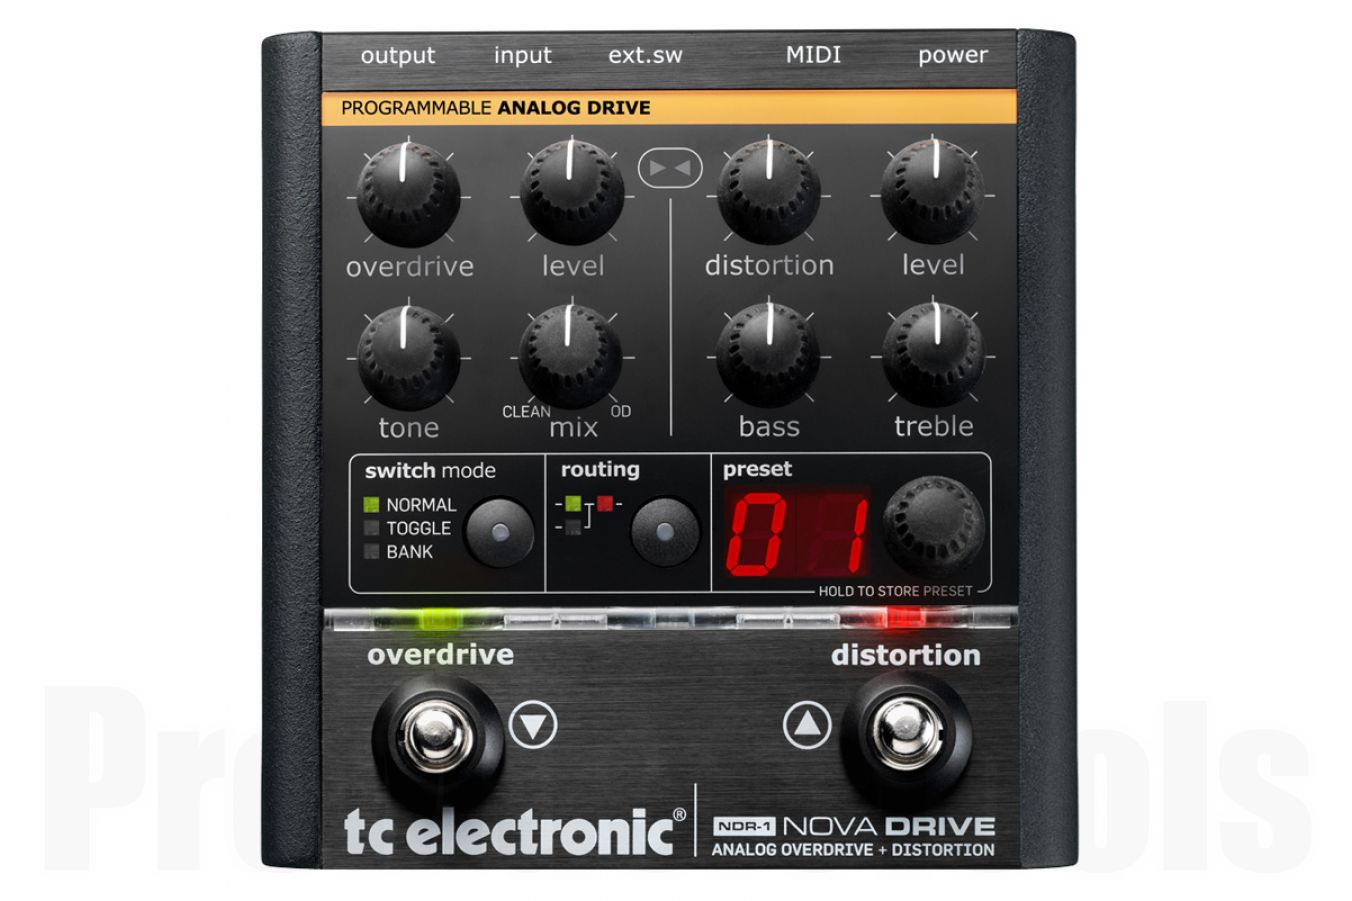 TC Electronic NDR-1 Nova Drive - demo